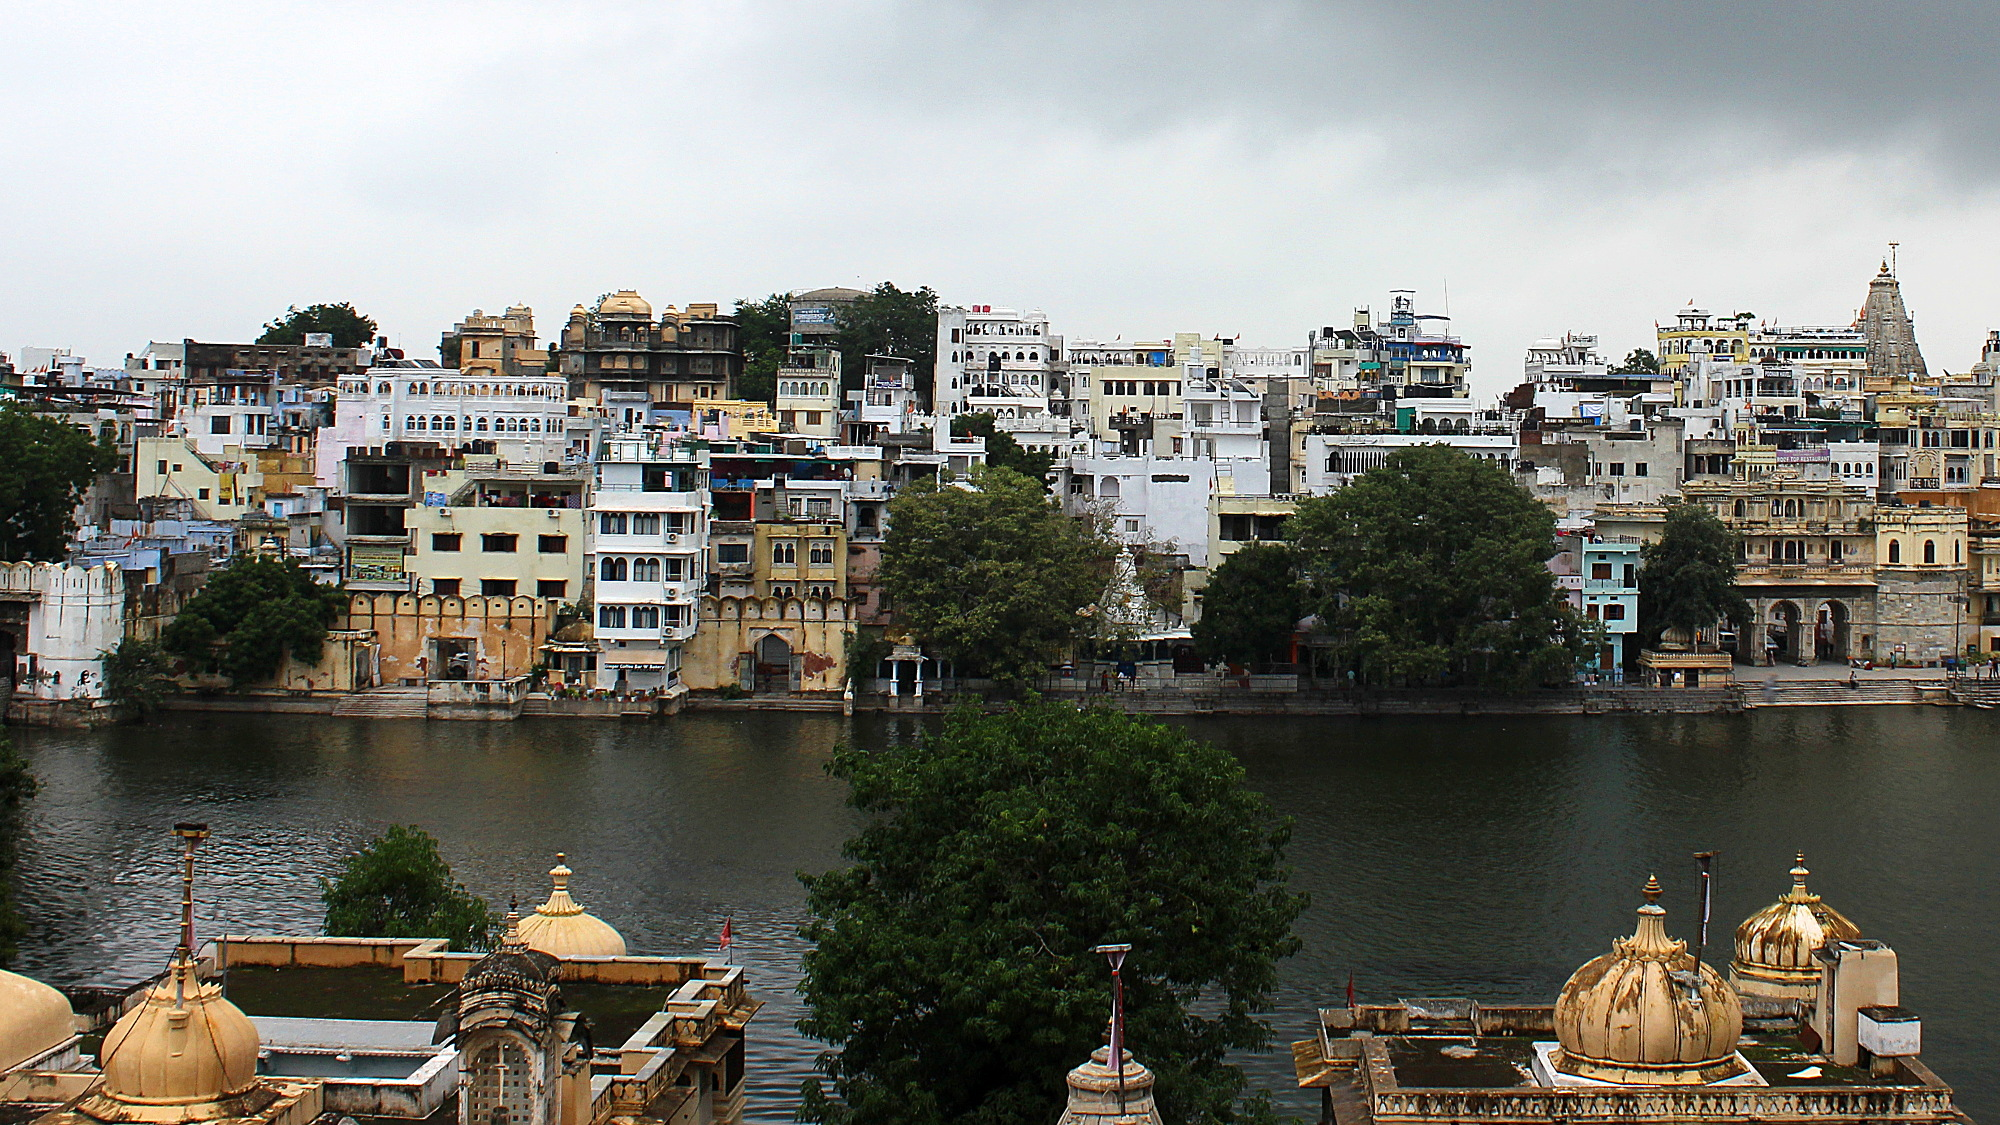 Lake Pichola dividing Udaipur into two areas.